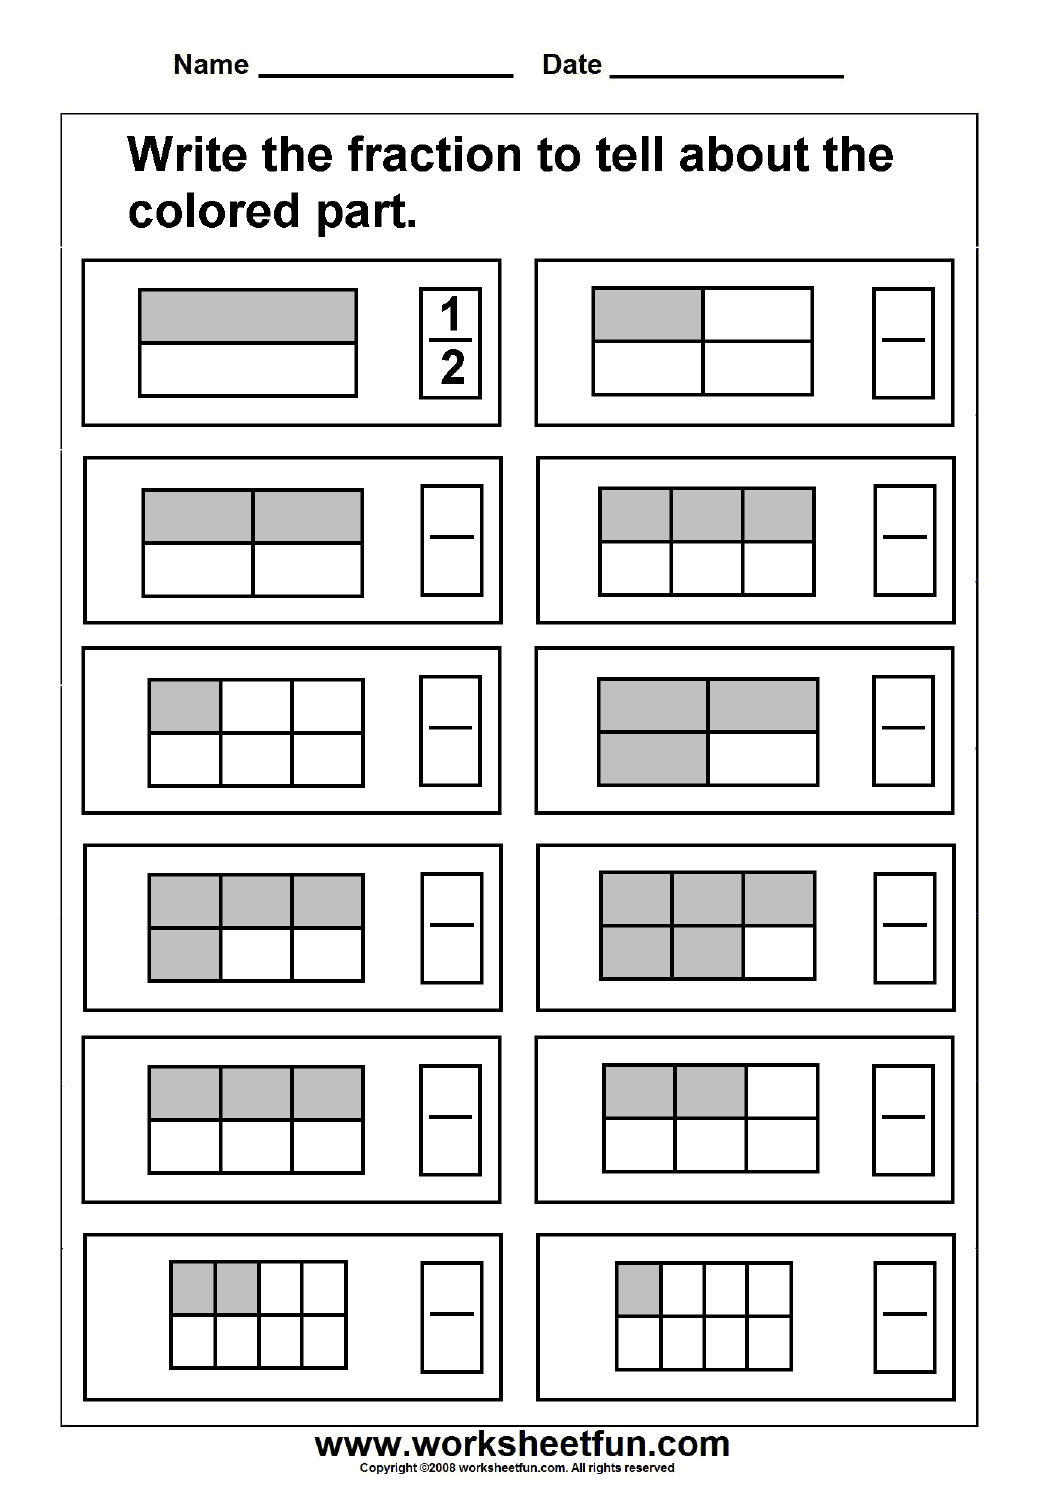 Fraction FREE Printable Worksheets Worksheetfun – Coloring Fractions Worksheet